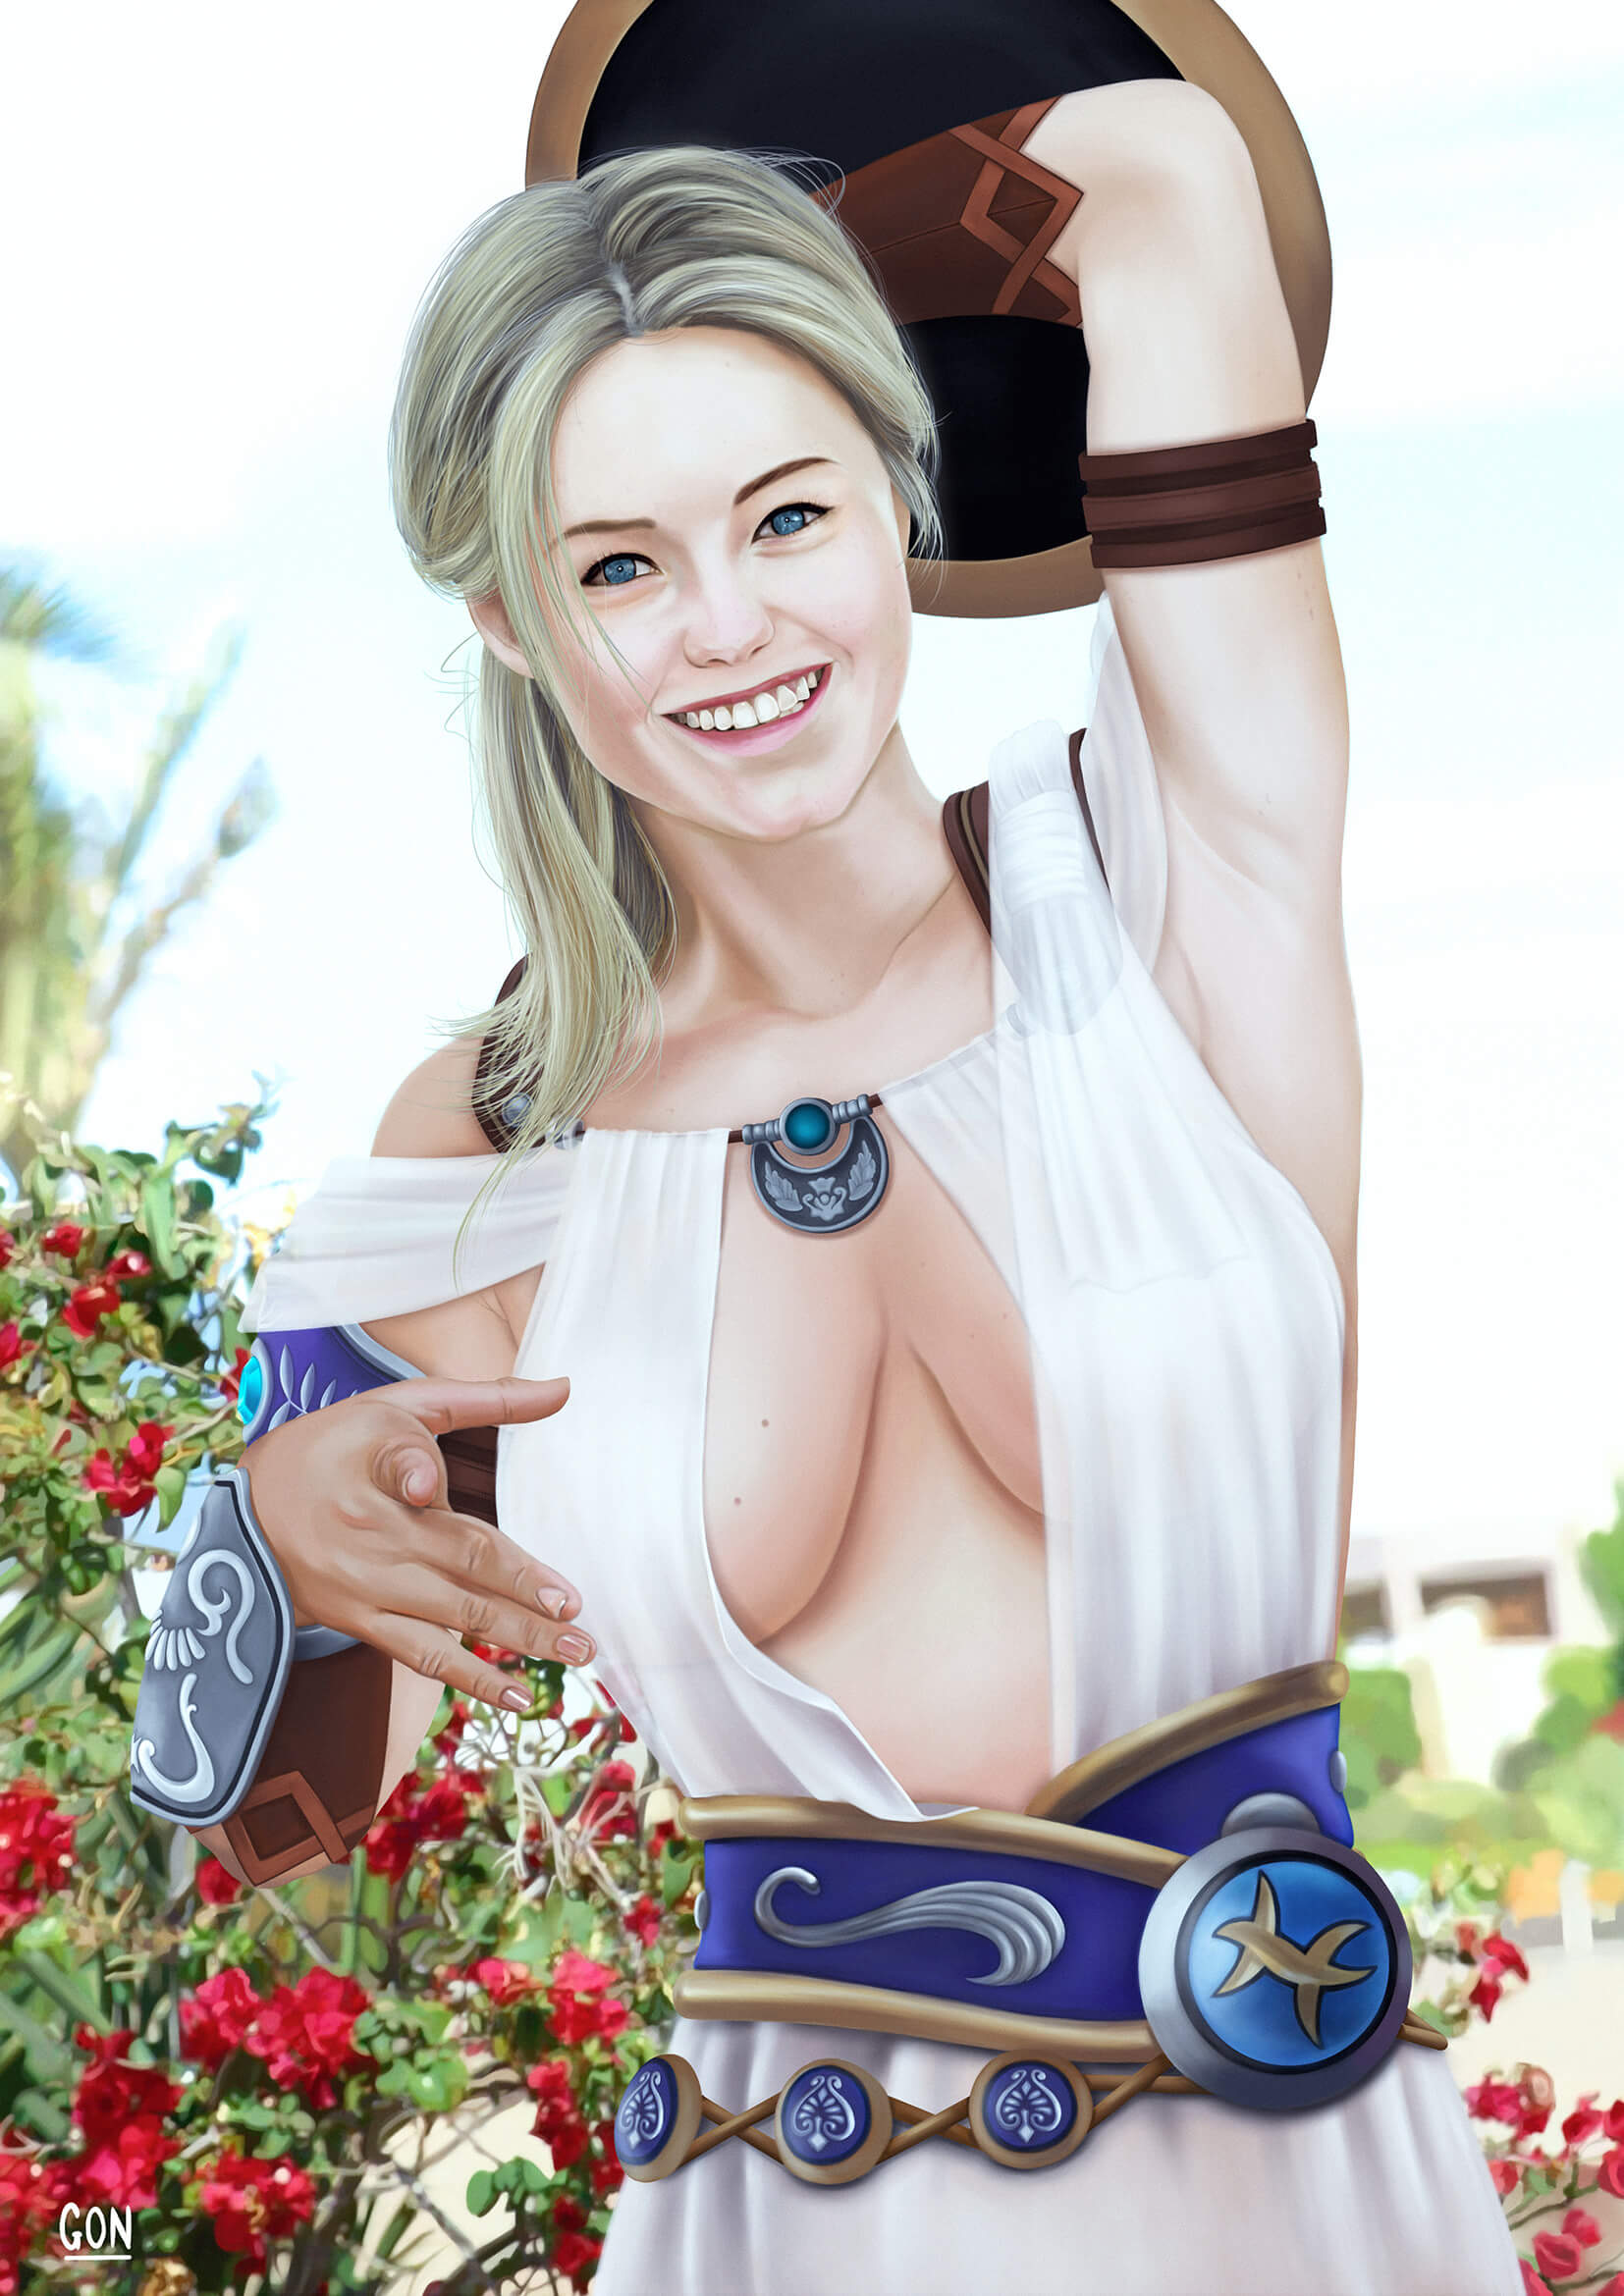 Sophitia hot cleavage pic